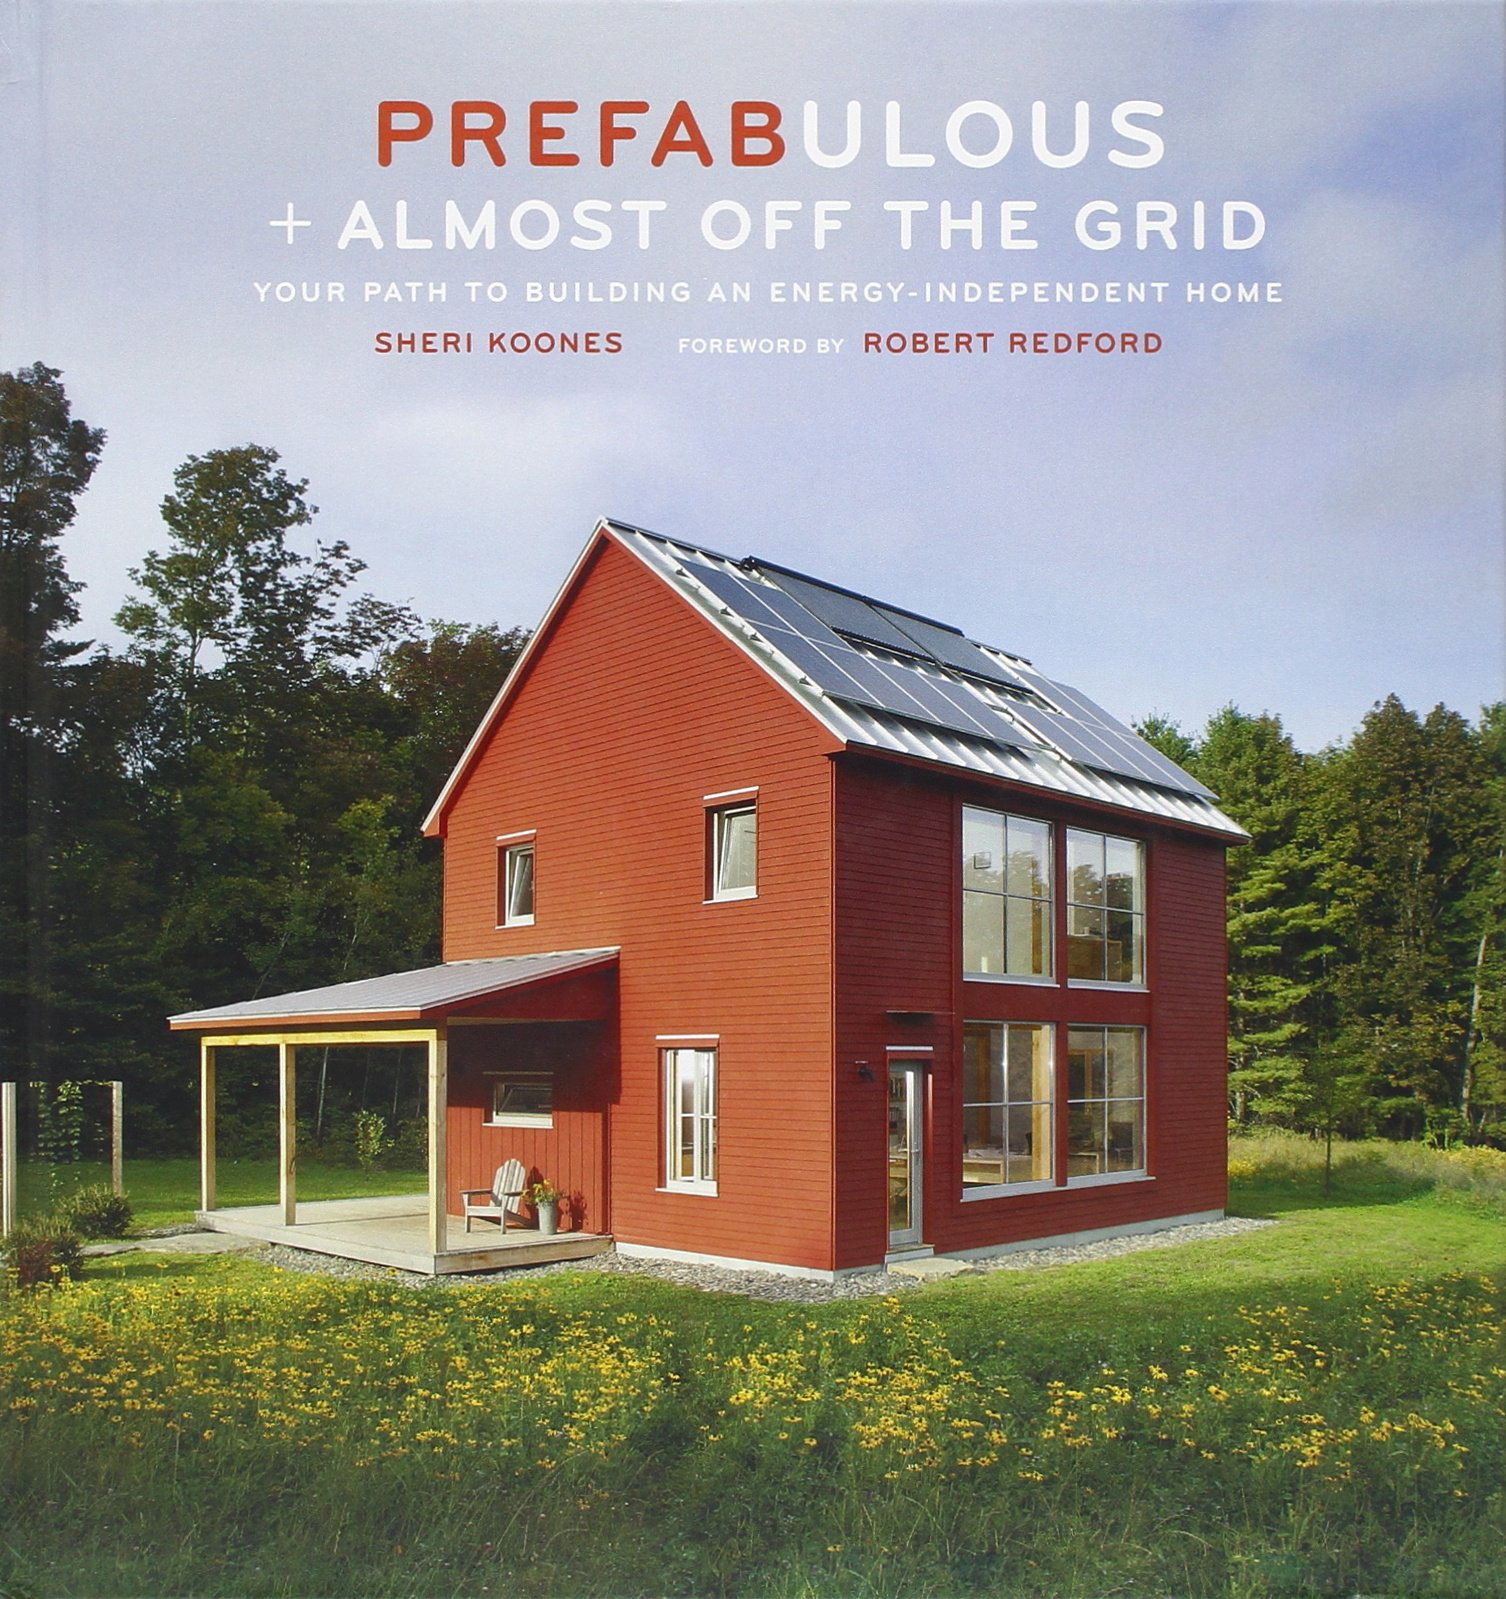 Building off grid homes - Prefabulous Almost Off The Grid Your Path To Building An Energy Independent Home Sheri Koones Robert Redford 9781419703256 Amazon Com Books